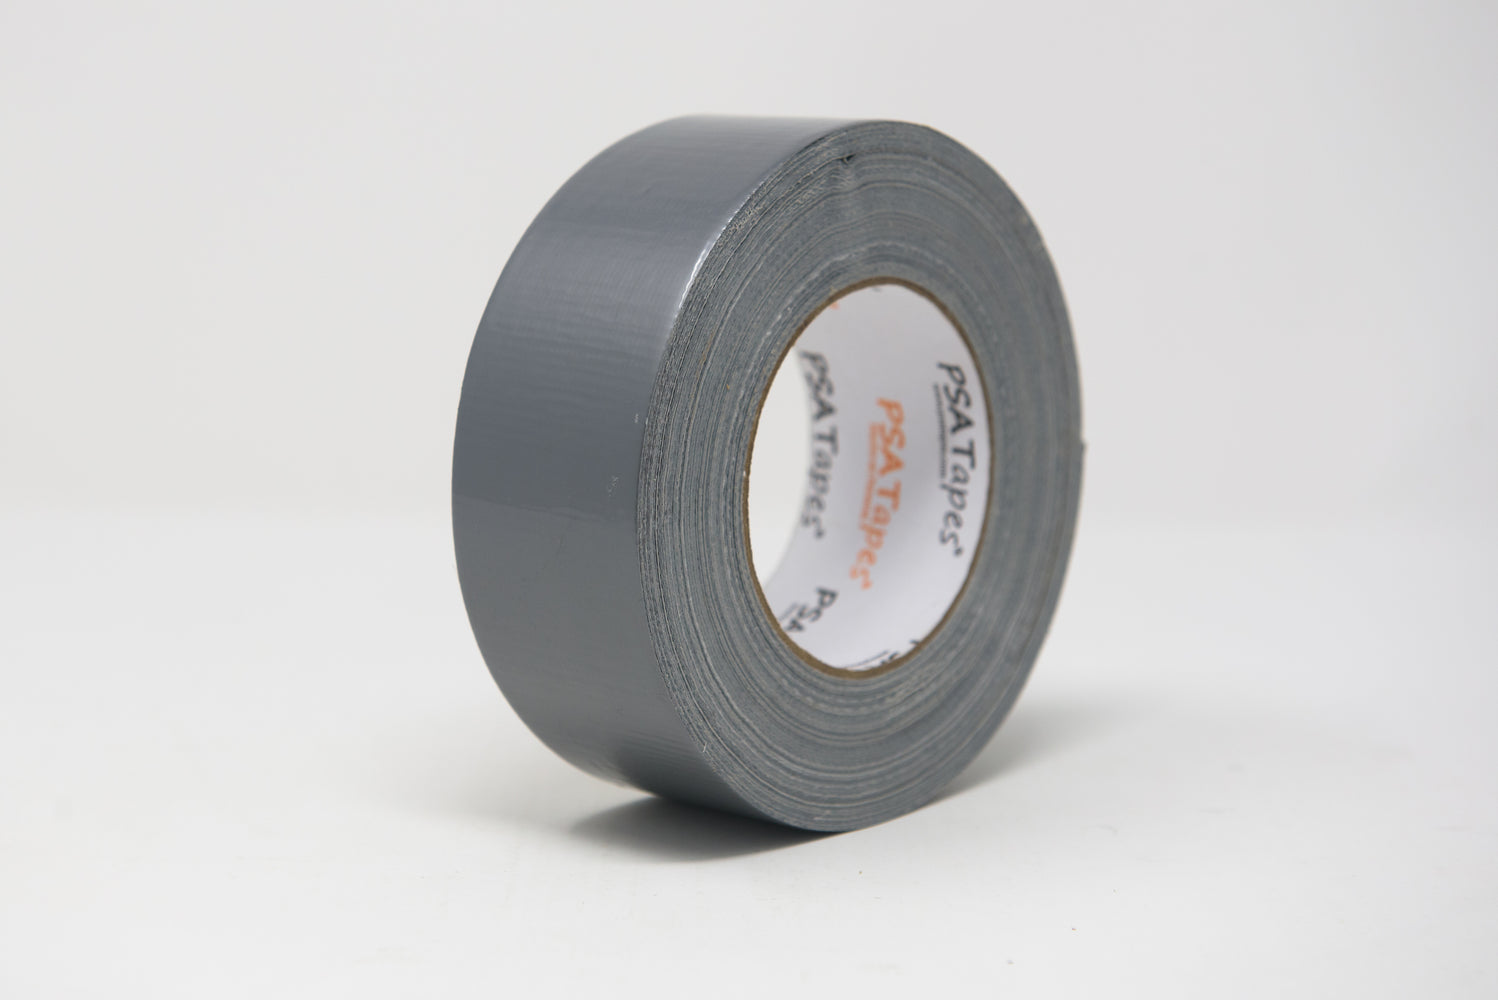 Tape De Ducto Gris (Tela) 2 X 40yds Psa Tapes